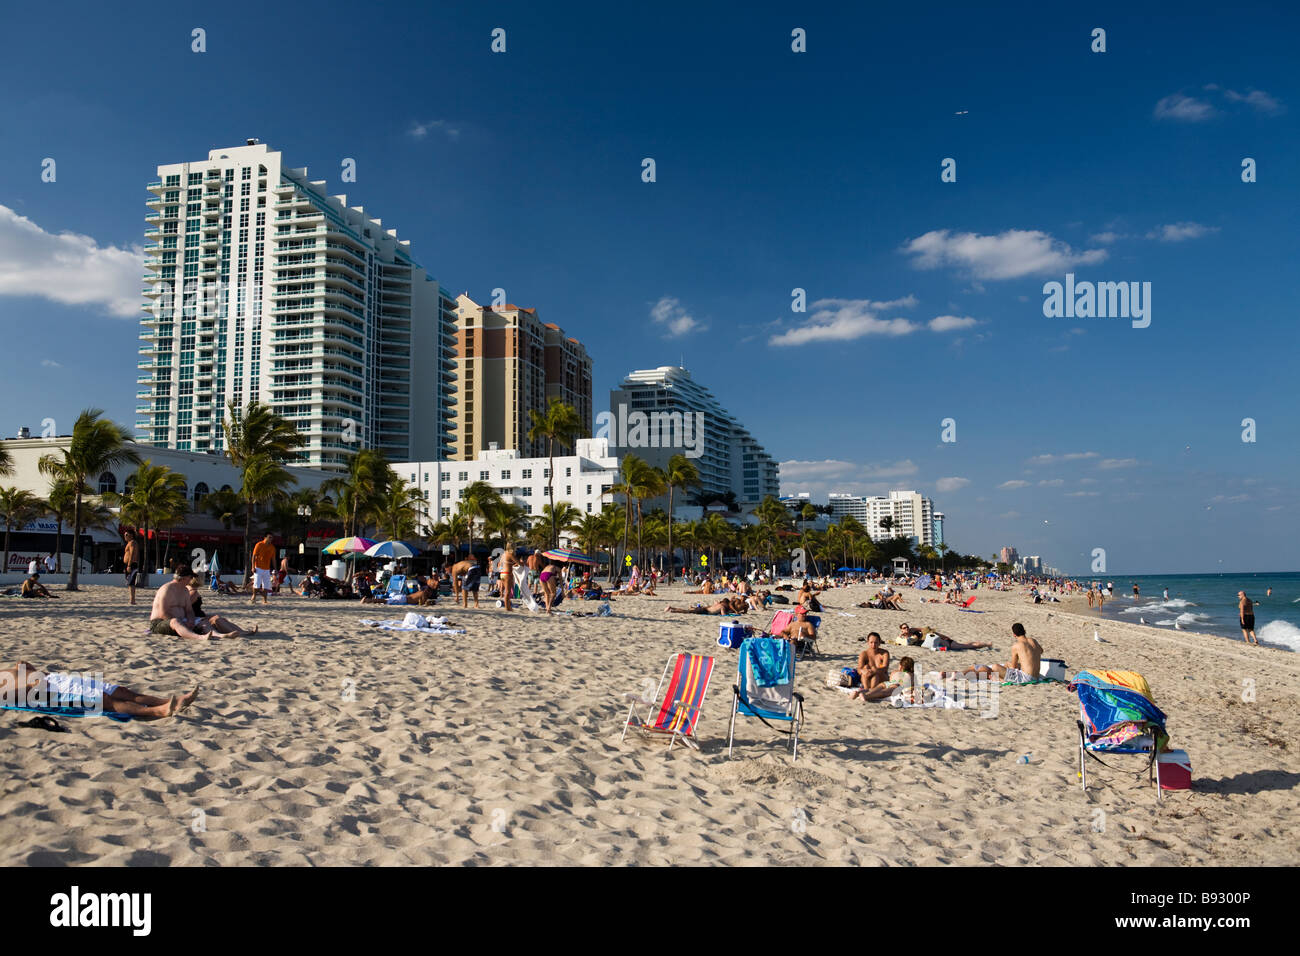 Fort Lauderdale beach with waterfront buildings, Florida, USA Stock Photo